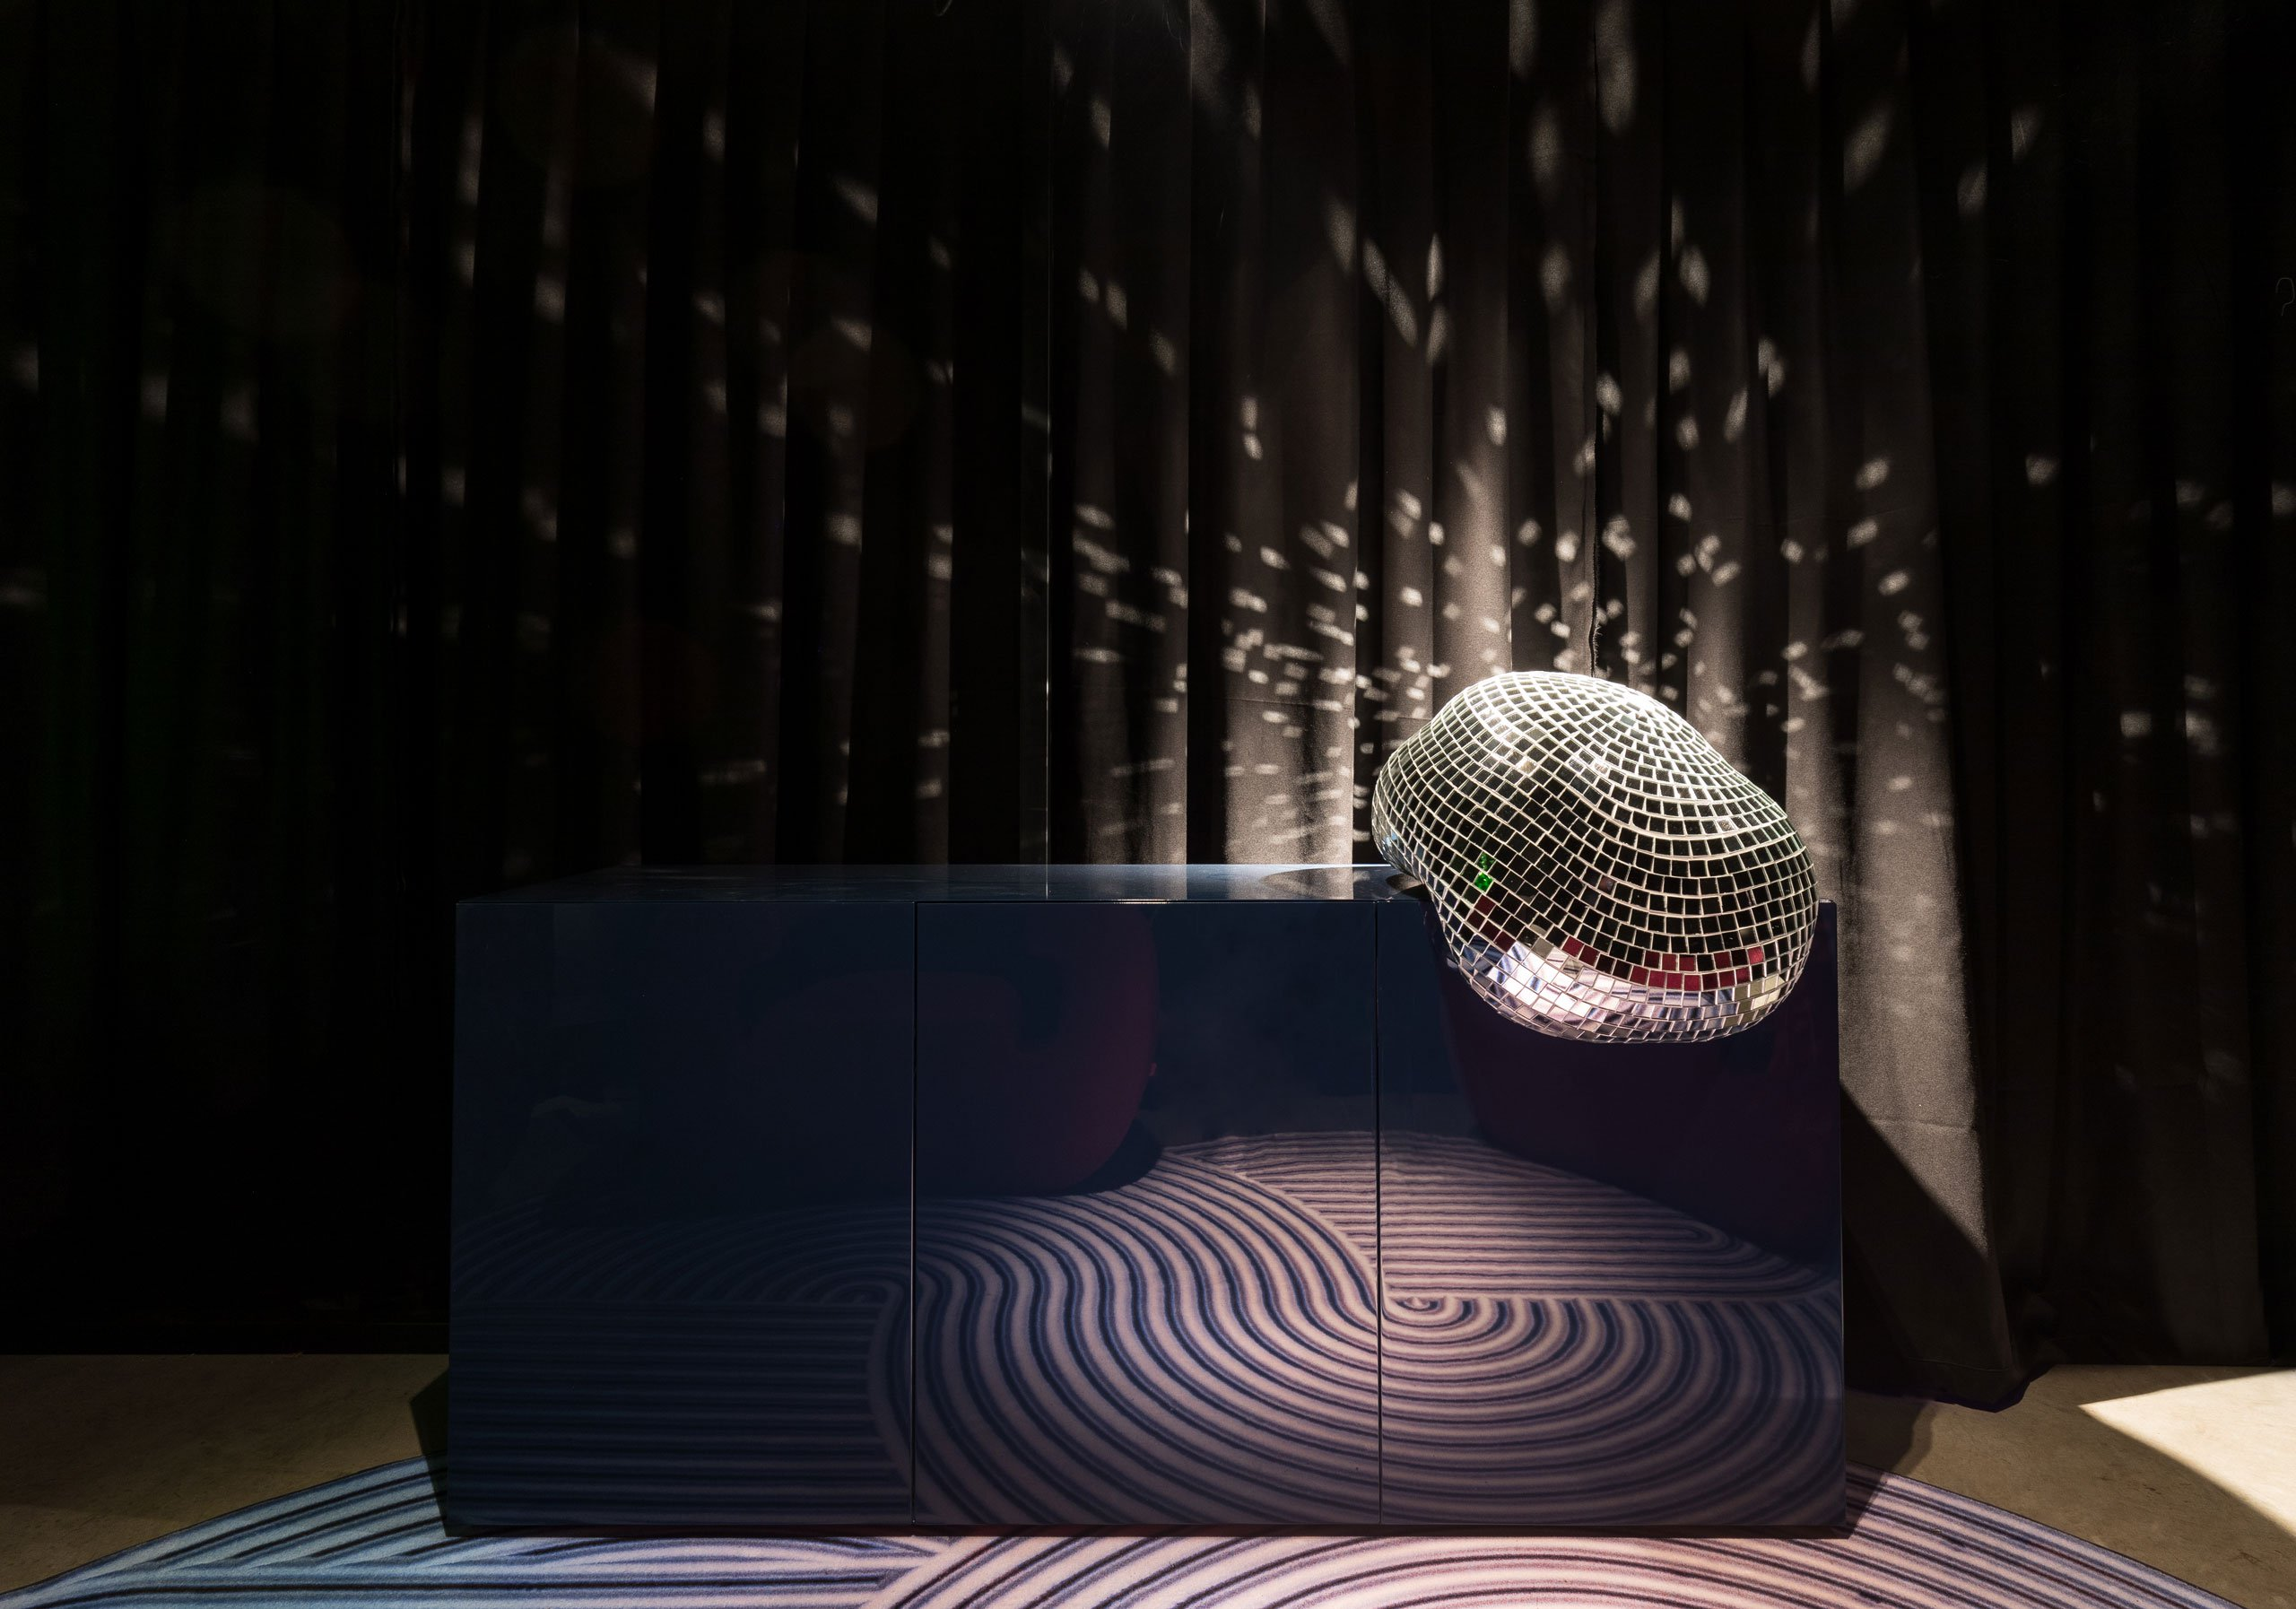 Do You Want to be in the Spotlight at Milan Design 2019 - After Party cabinet by ROTGANZEN for the Disco Gufram series. Photo by Delfino Sisto Legnani e Marco Cappelletti. milan design week Do You Want to be in the Spotlight at Milan Design Week 2019? Do You Want to be in the Spotlight at Milan Design 2019 After Party cabinet by ROTGANZEN for the Disco Gufram series